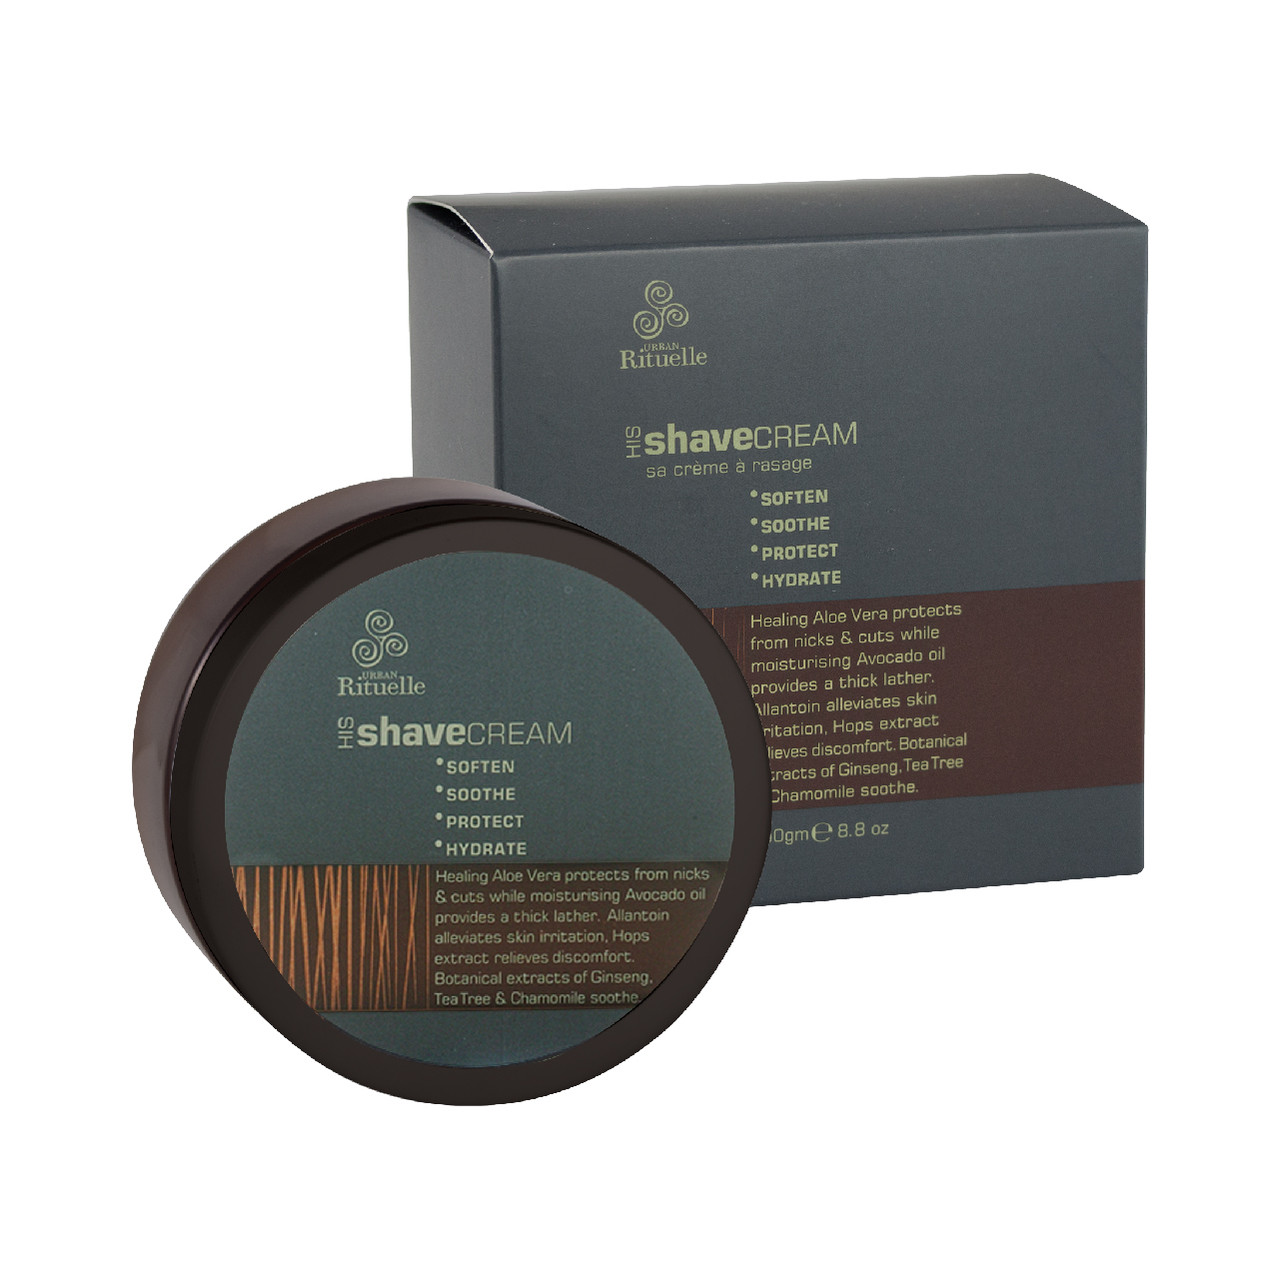 HIS - Shave Cream - Urban Rituelle